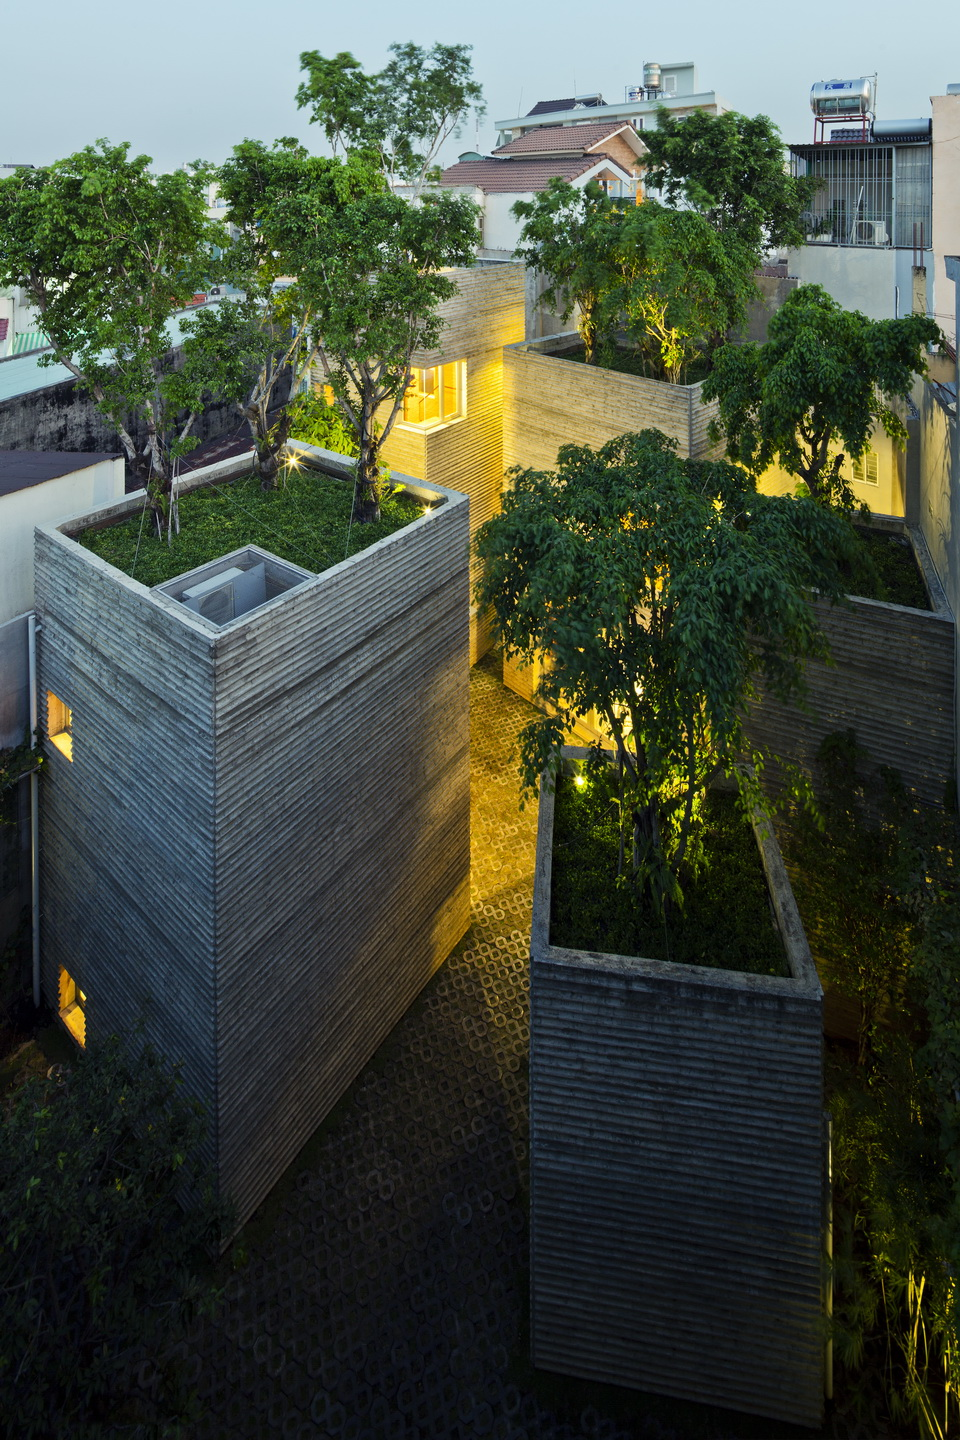 House-for-Trees_Vo-Trong-Nghia-Architects_8.jpg